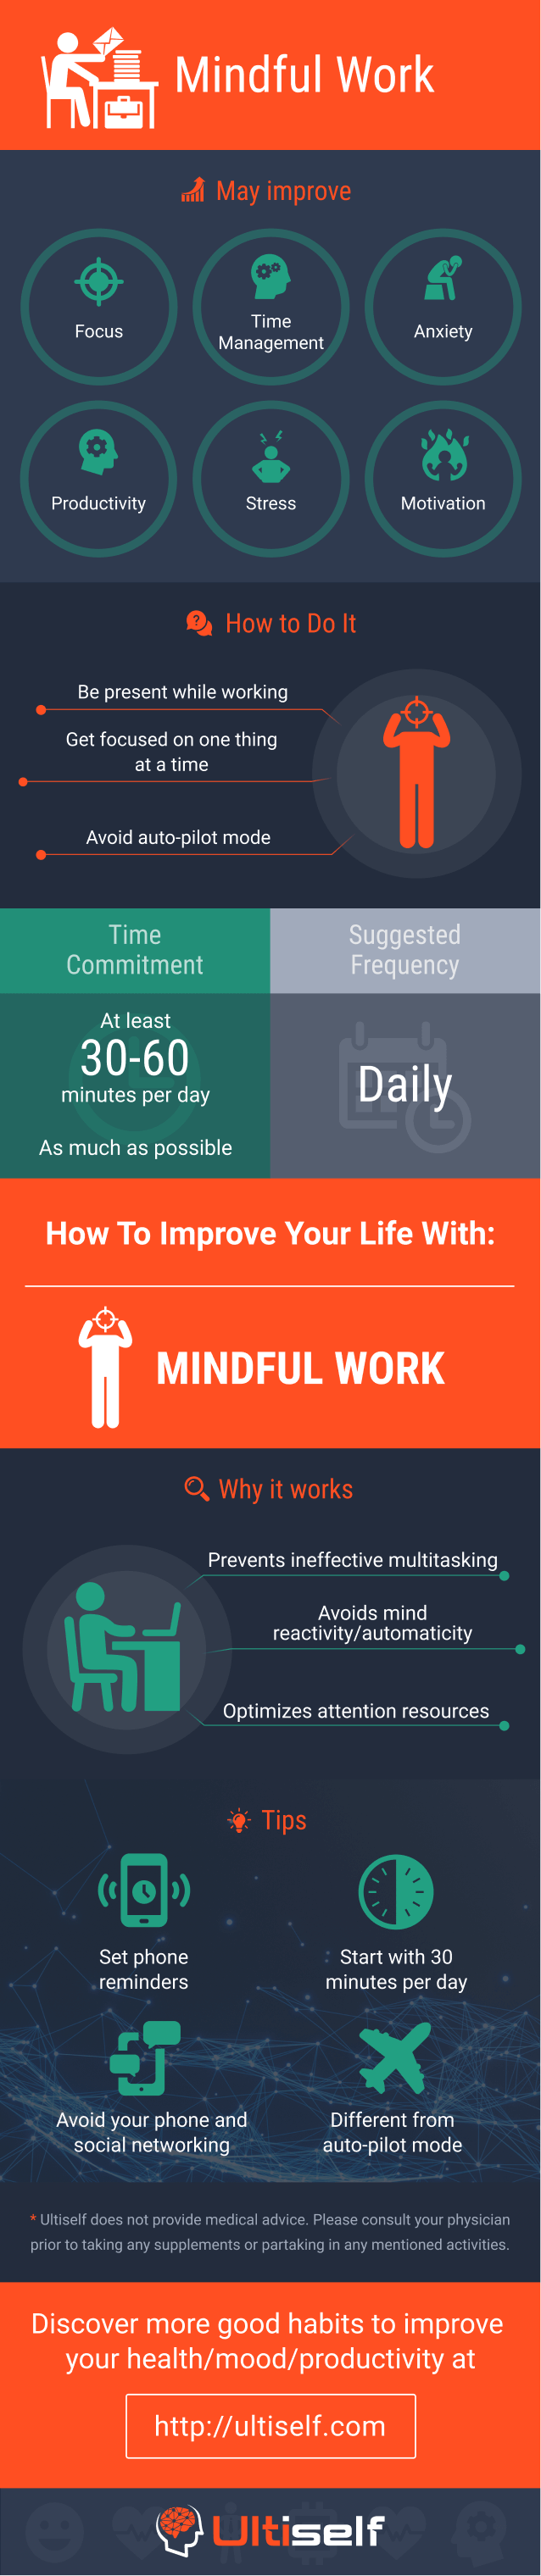 Mindful Work infographic